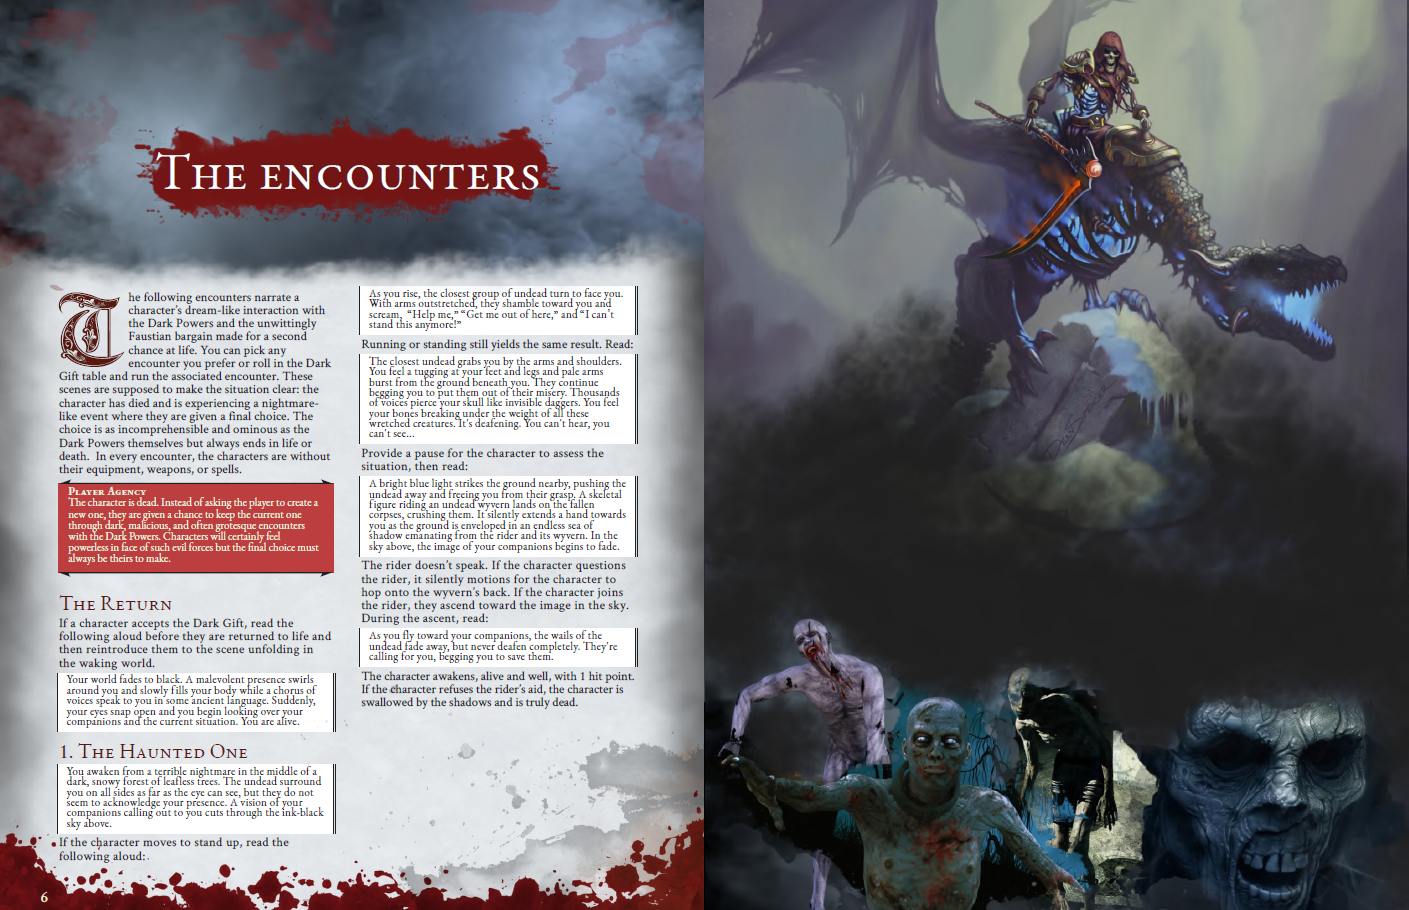 Preview of the Introduction, Encounter #1 and an art of a skeletal rider on top of some zombies.